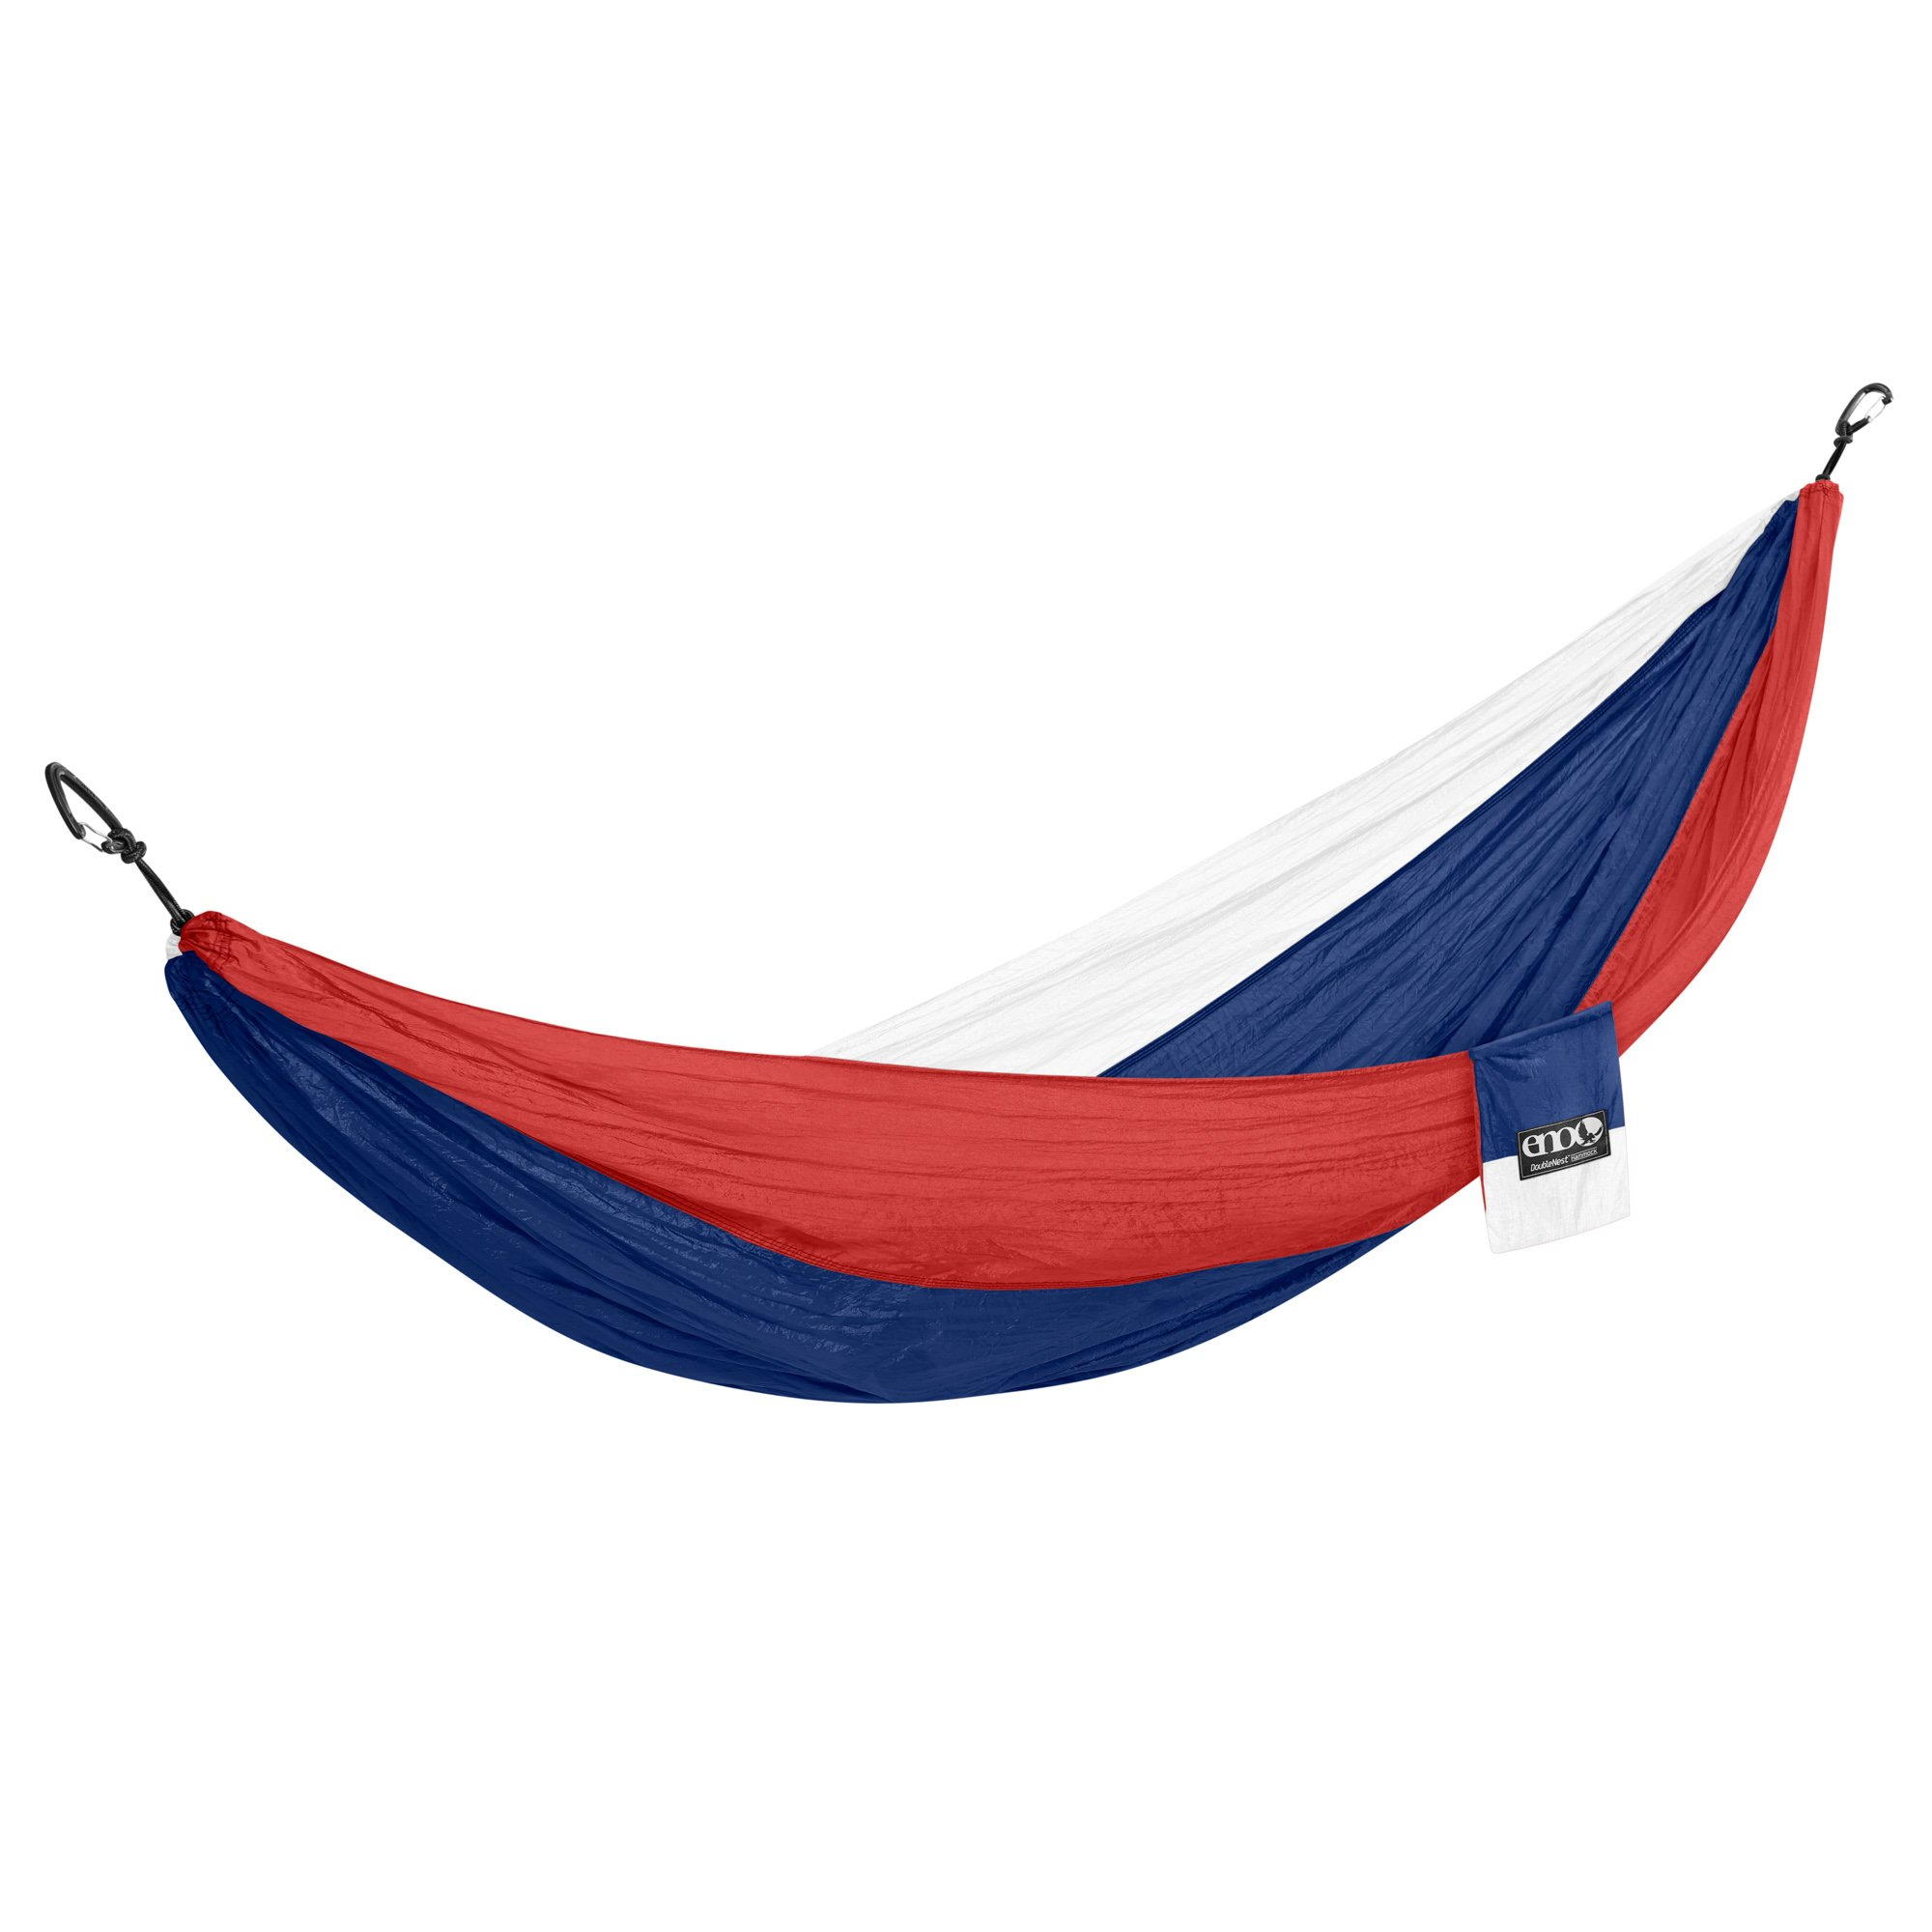 singlenest simplify your eno family doublenest com for hammock summer nicolasprudhon with sale eagles camping